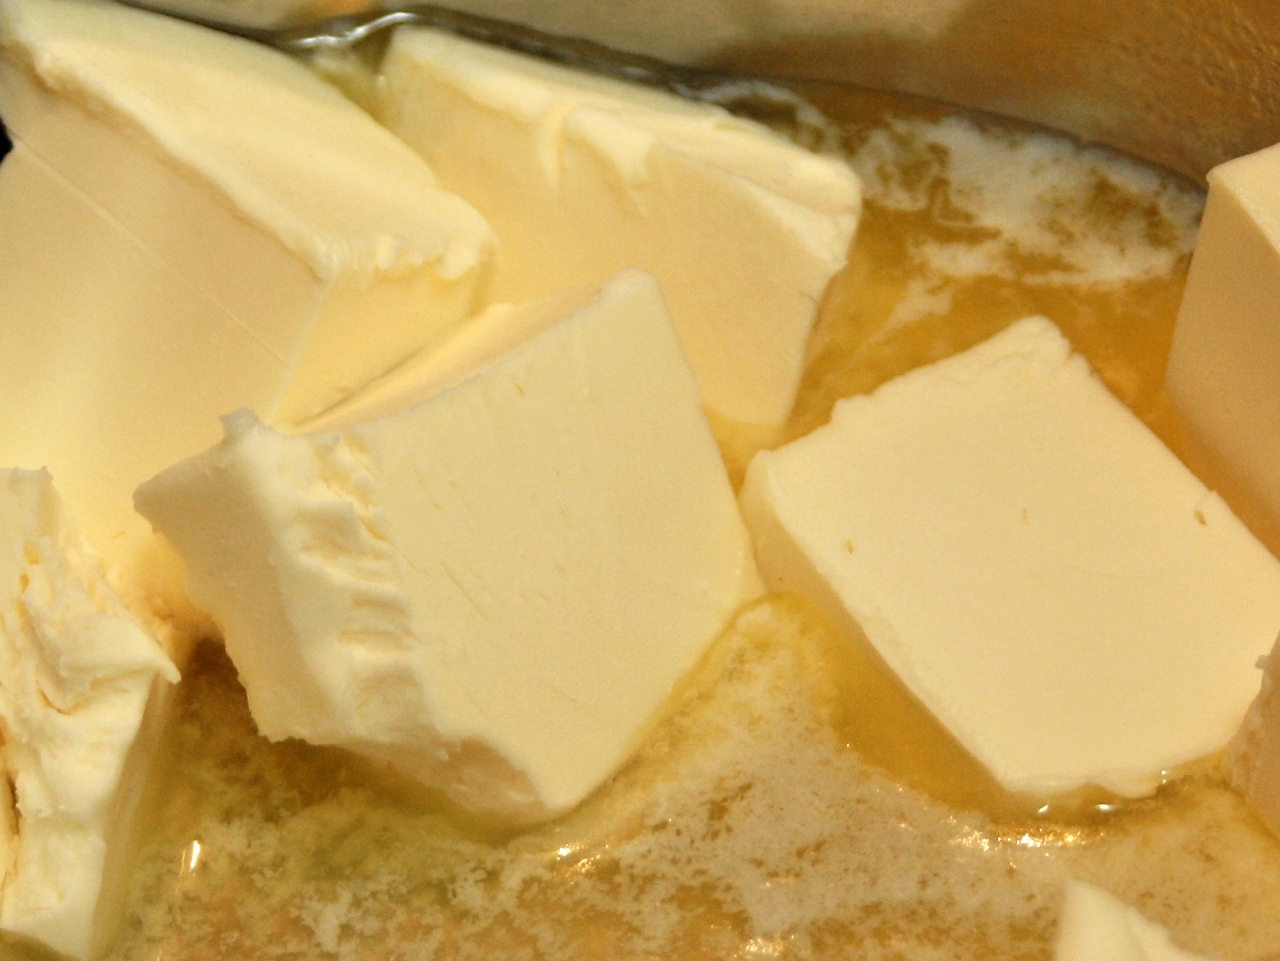 Manufacturing sweet foods, semi-finished products of flour products and milk concentrates